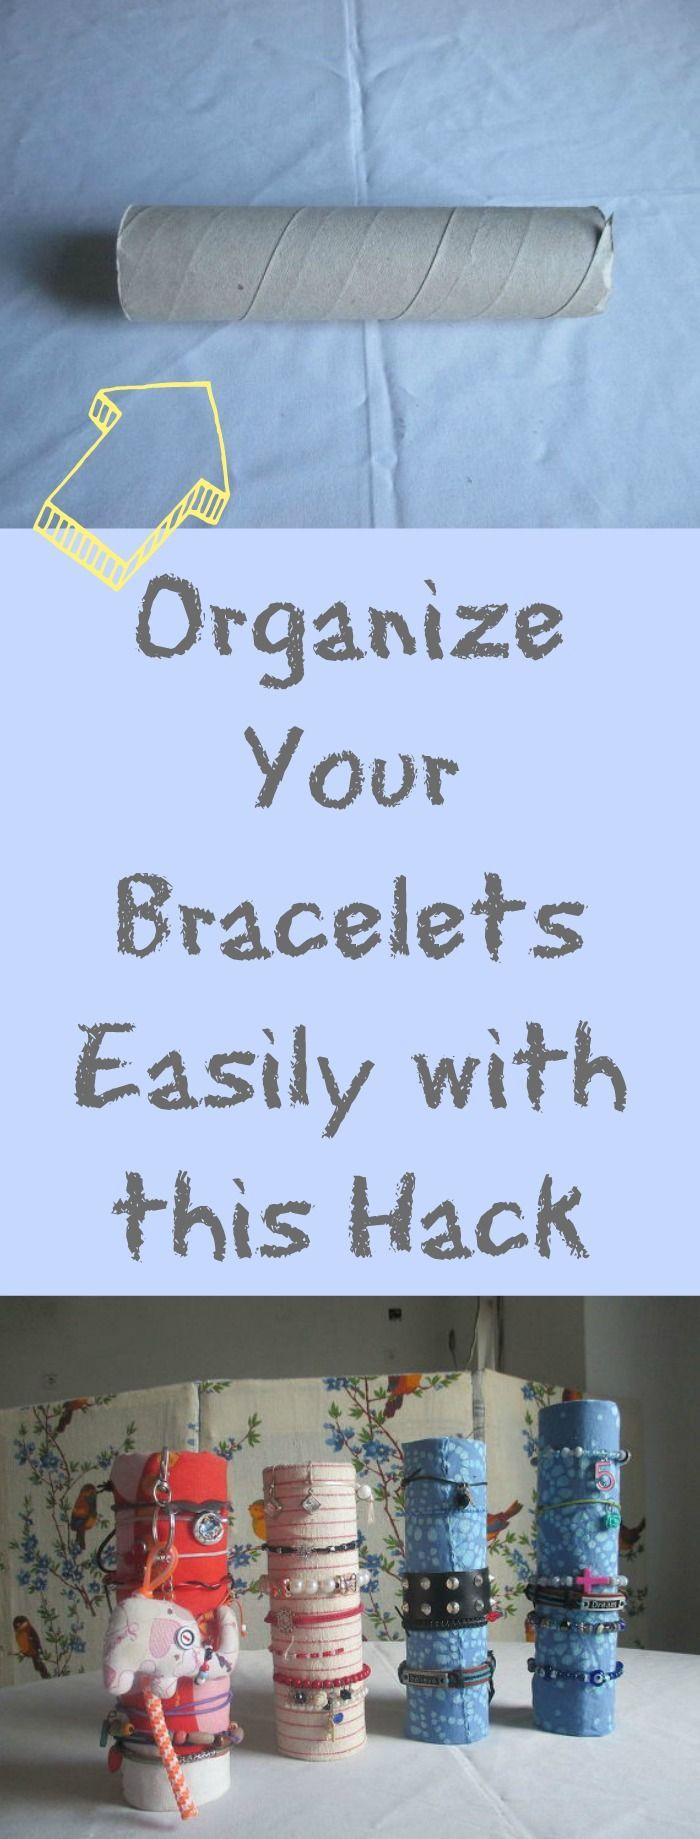 This is such a smart way to organize bracelets and would be great to have the kids make.